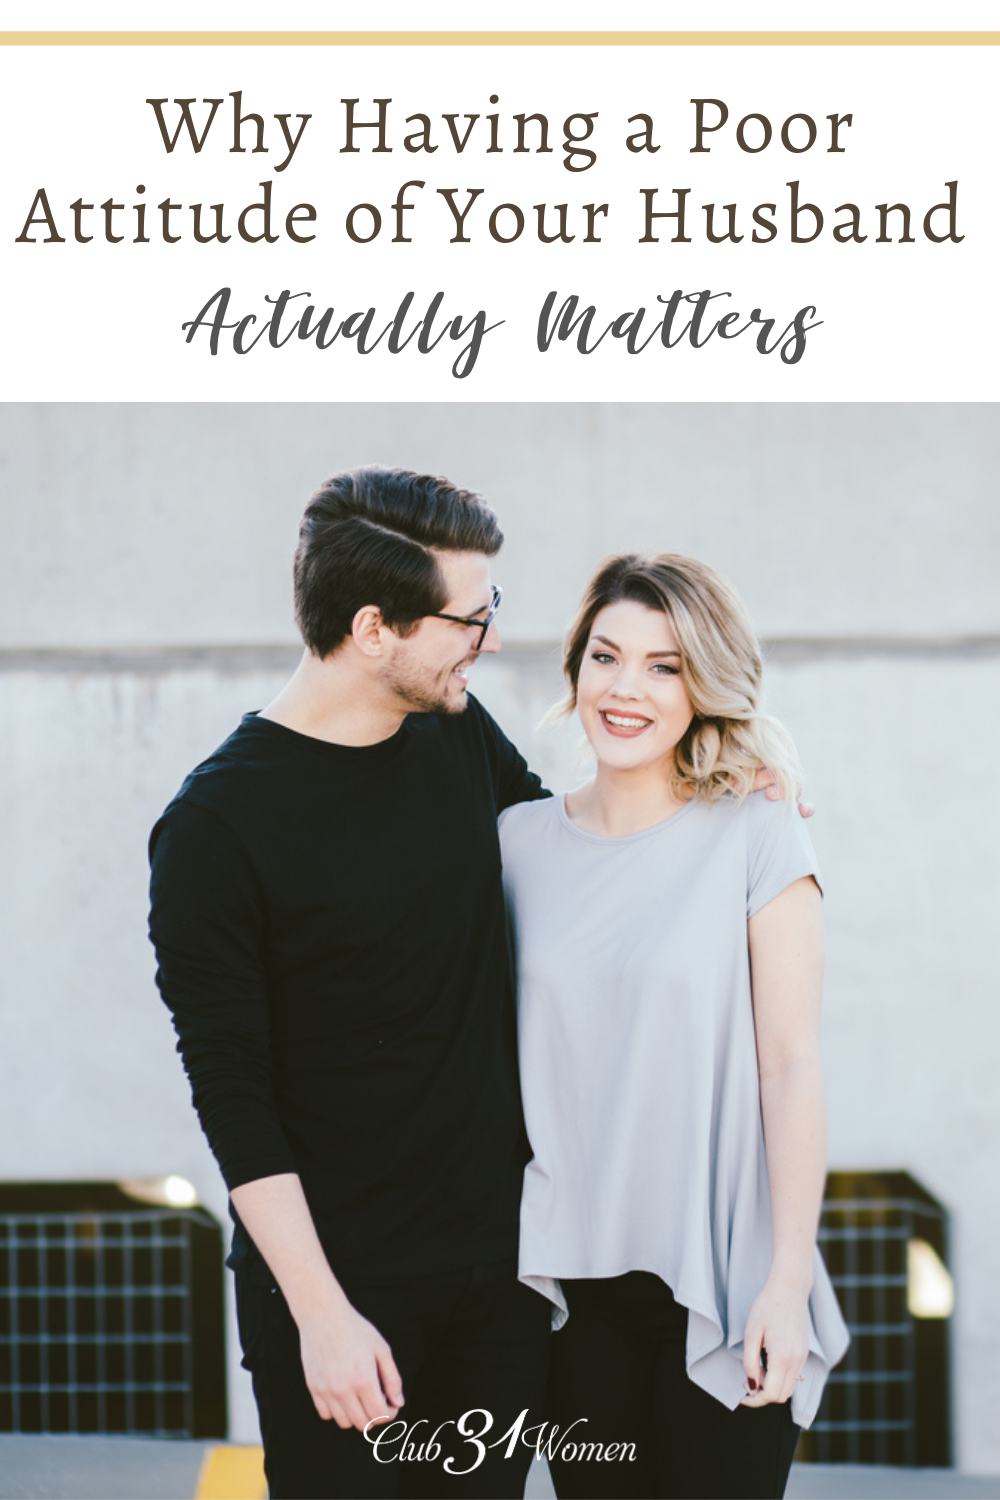 Having a poor attitude toward your husband actually matters in your marriage. It can be harmful to him and your relationship. via @Club31Women